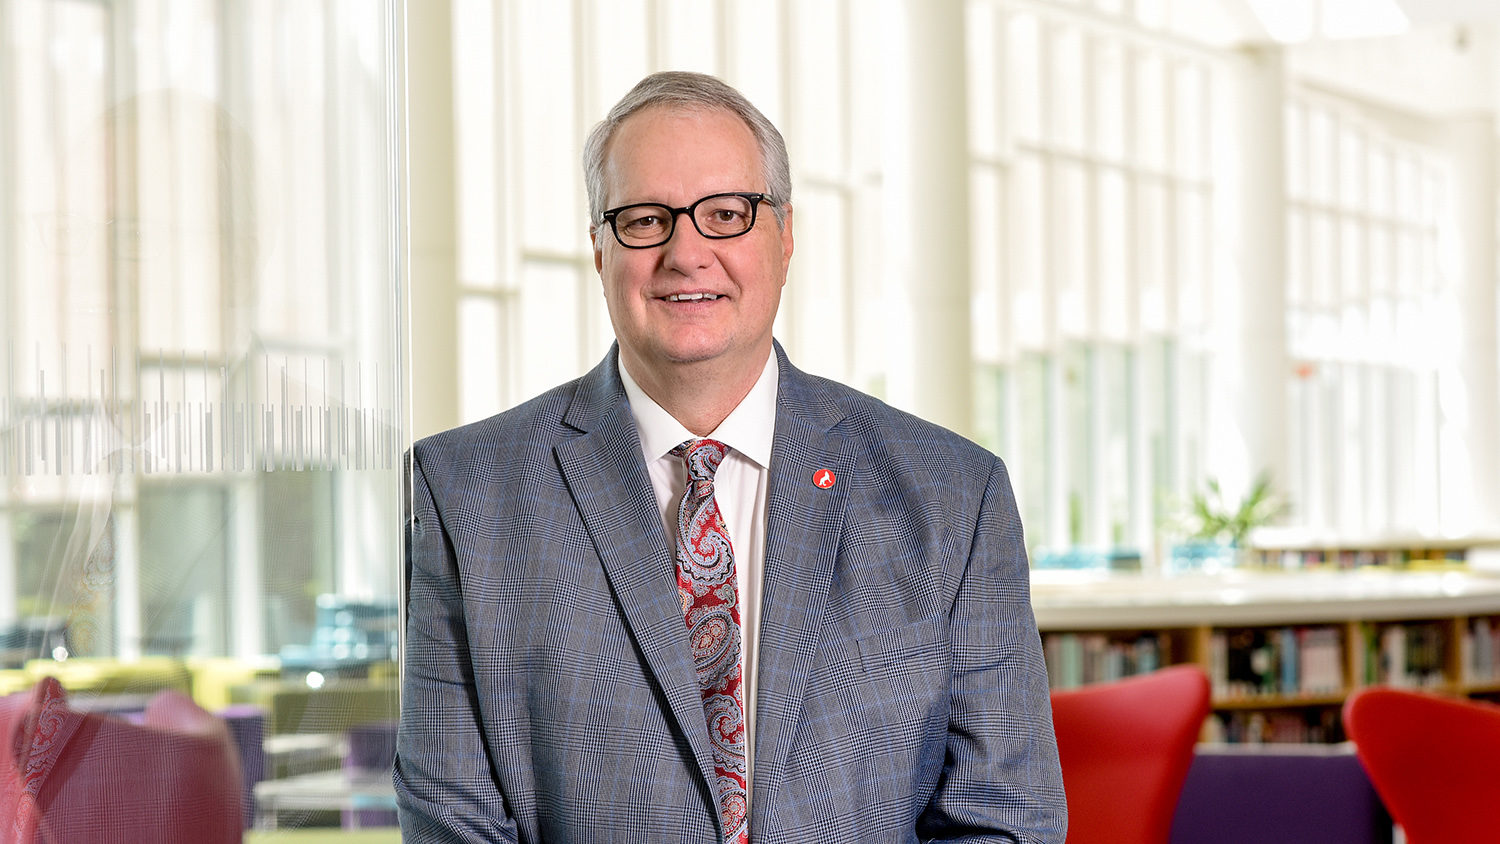 Executive Vice Chancellor and Provost Warwick A. Arden